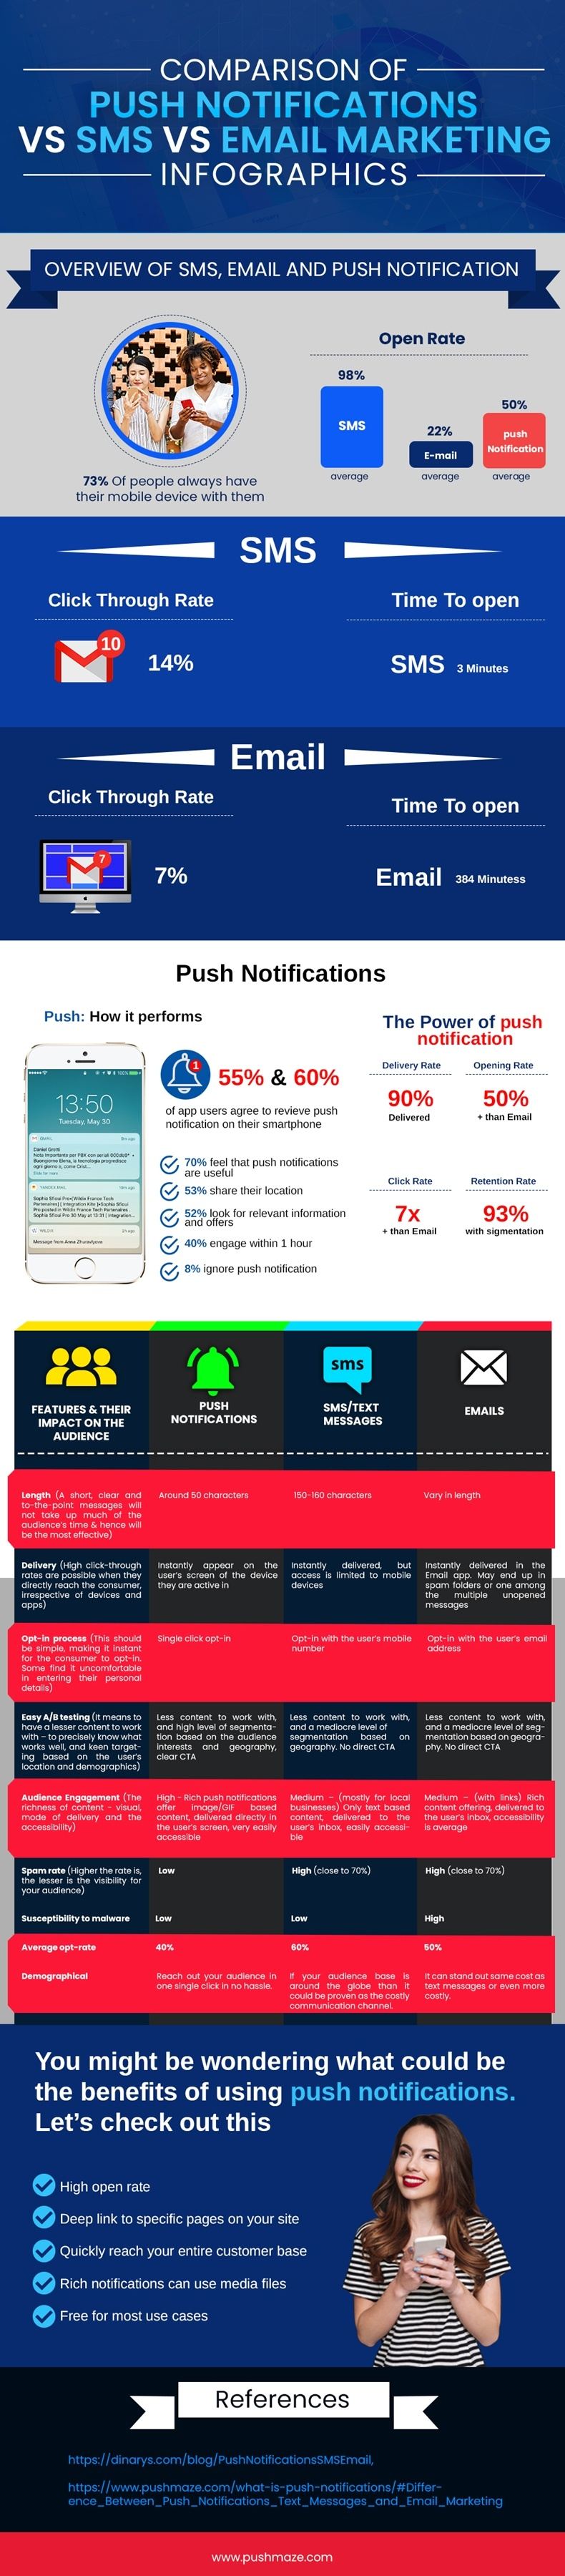 Push-vs-SMS-vs-Email-marketing-Infographic